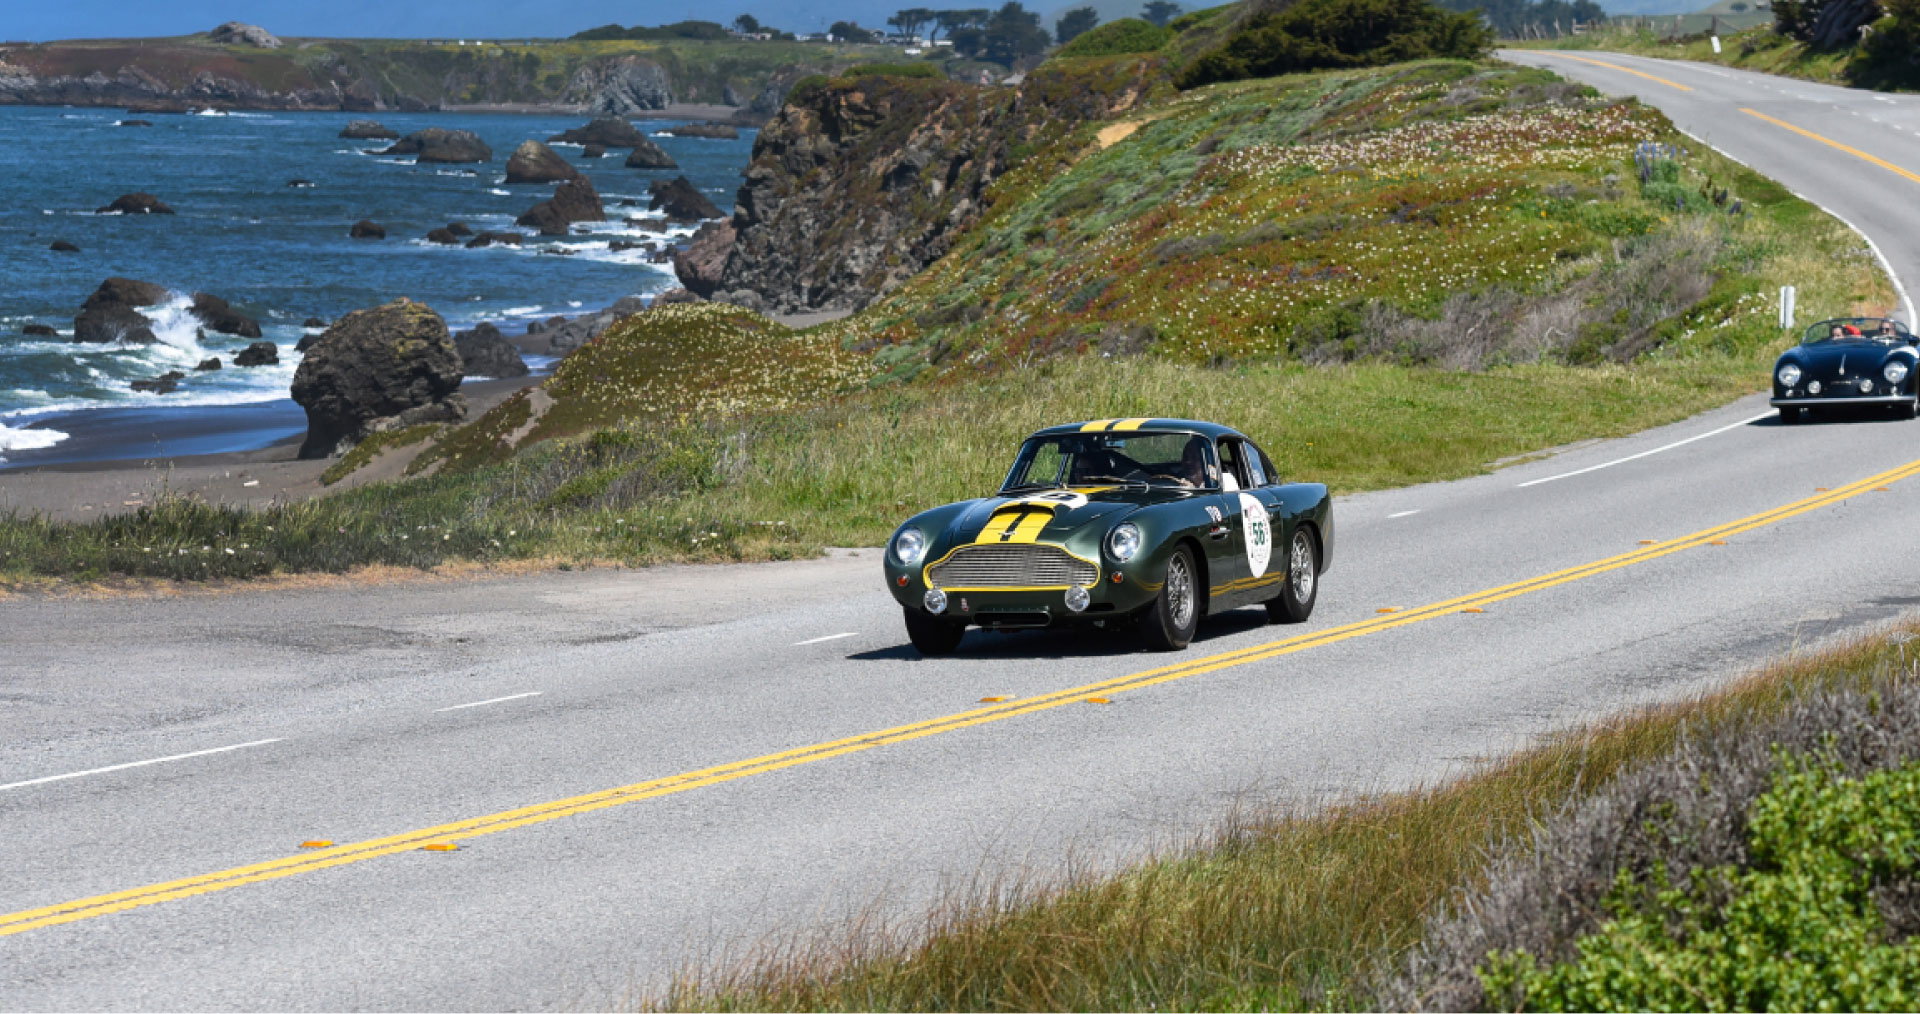 Important cars, little roads and wonderful friends